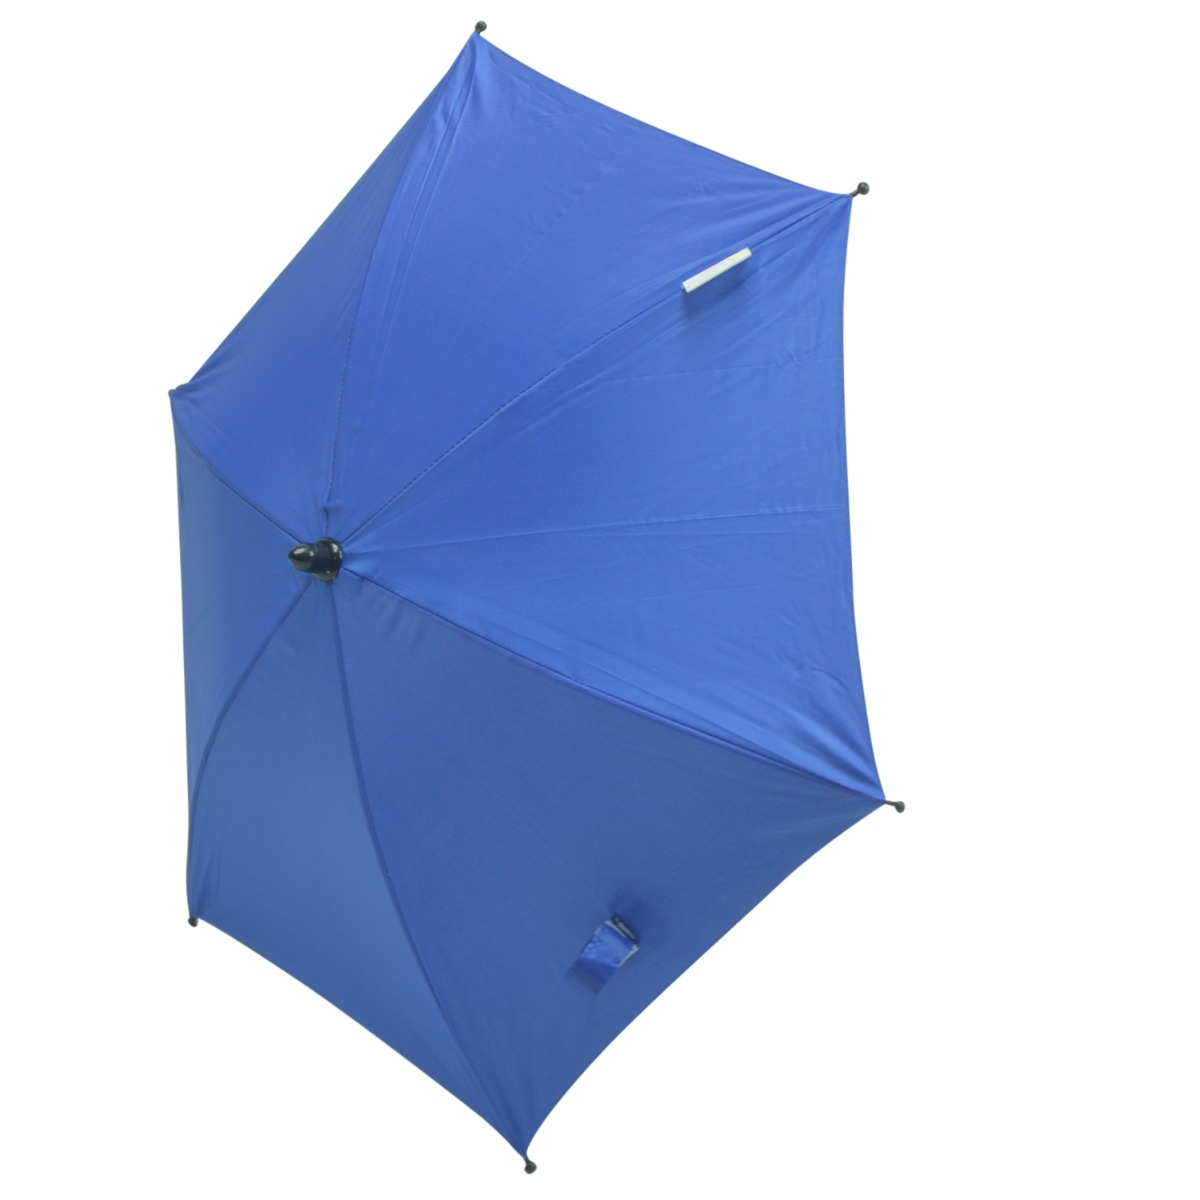 Baby-Parasol-Universal-Sun-Umbrella-Shade-Maker-Canopy-For-Pushchair-Pram-Buggy thumbnail 25